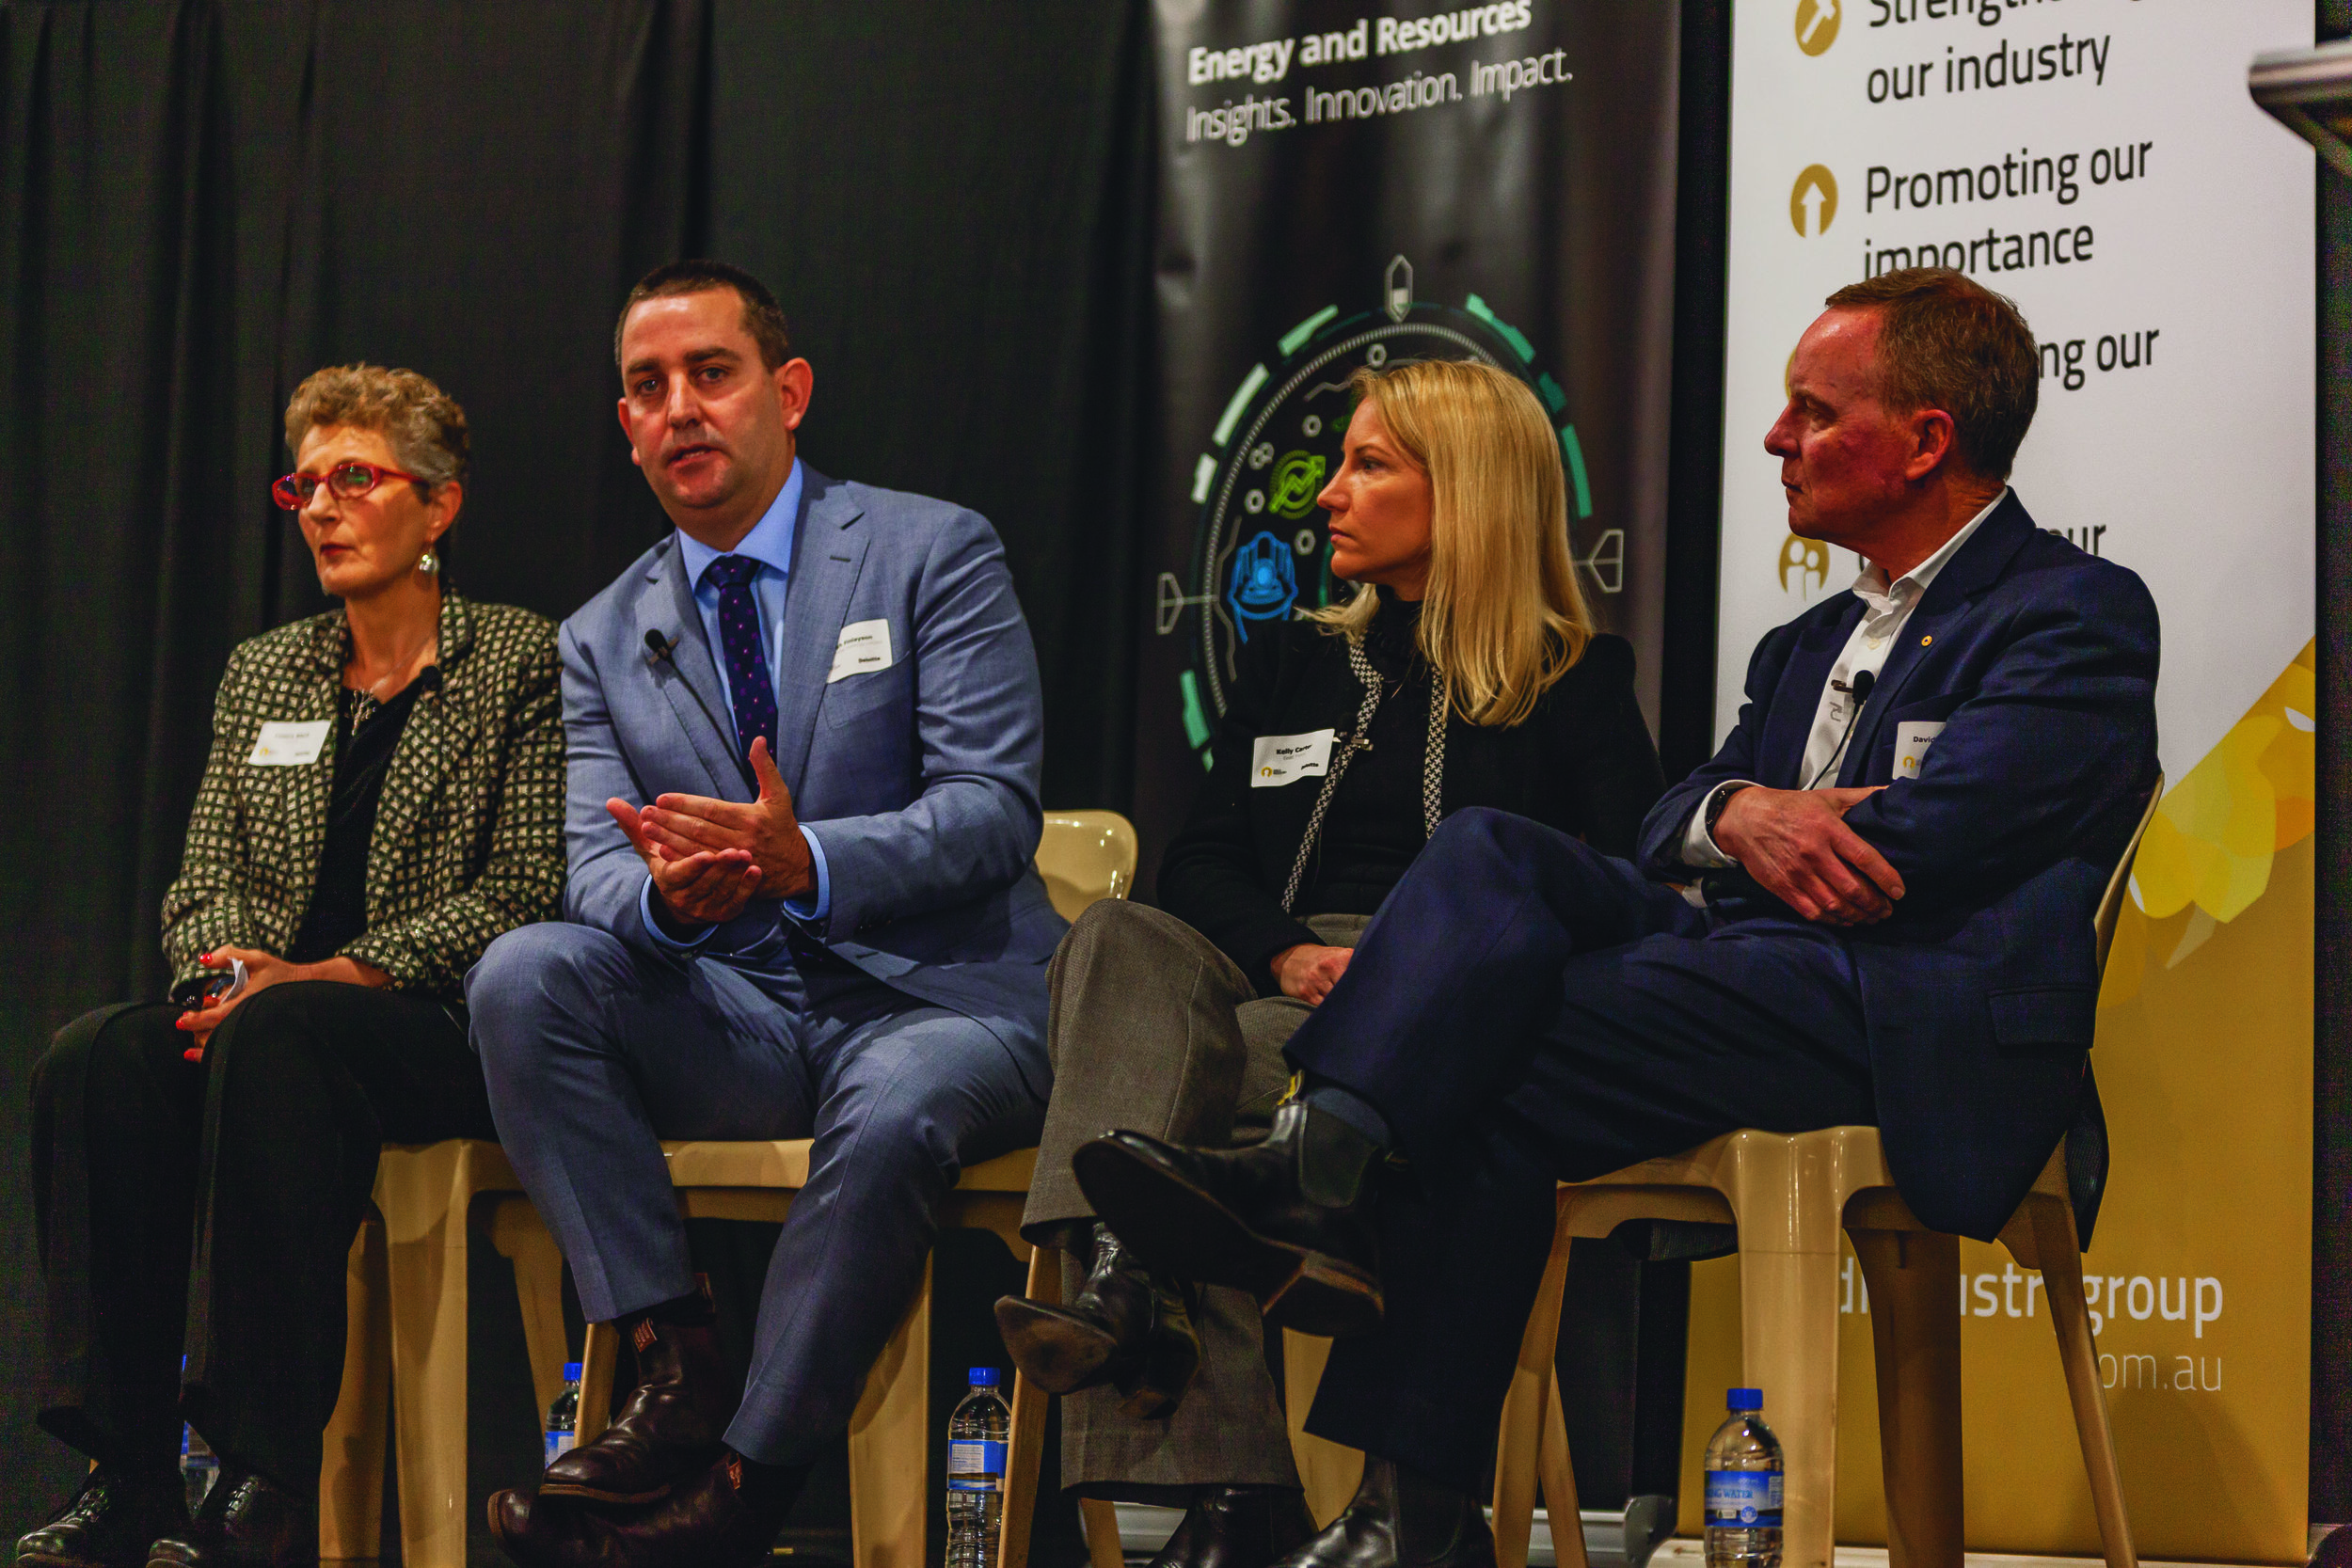 GIG and Deloitte's breakfast panel (L-R), Deloitte Risk Advisory Principal Dr Leeora Black, Saracen Mineral Holdings MD Raleigh Finlayson, GIG Vice Chairperson and Goldfields VP: Legal & Compliance Kelly Carter, and retired Australian Army Lieutenant General David Morrison AO.